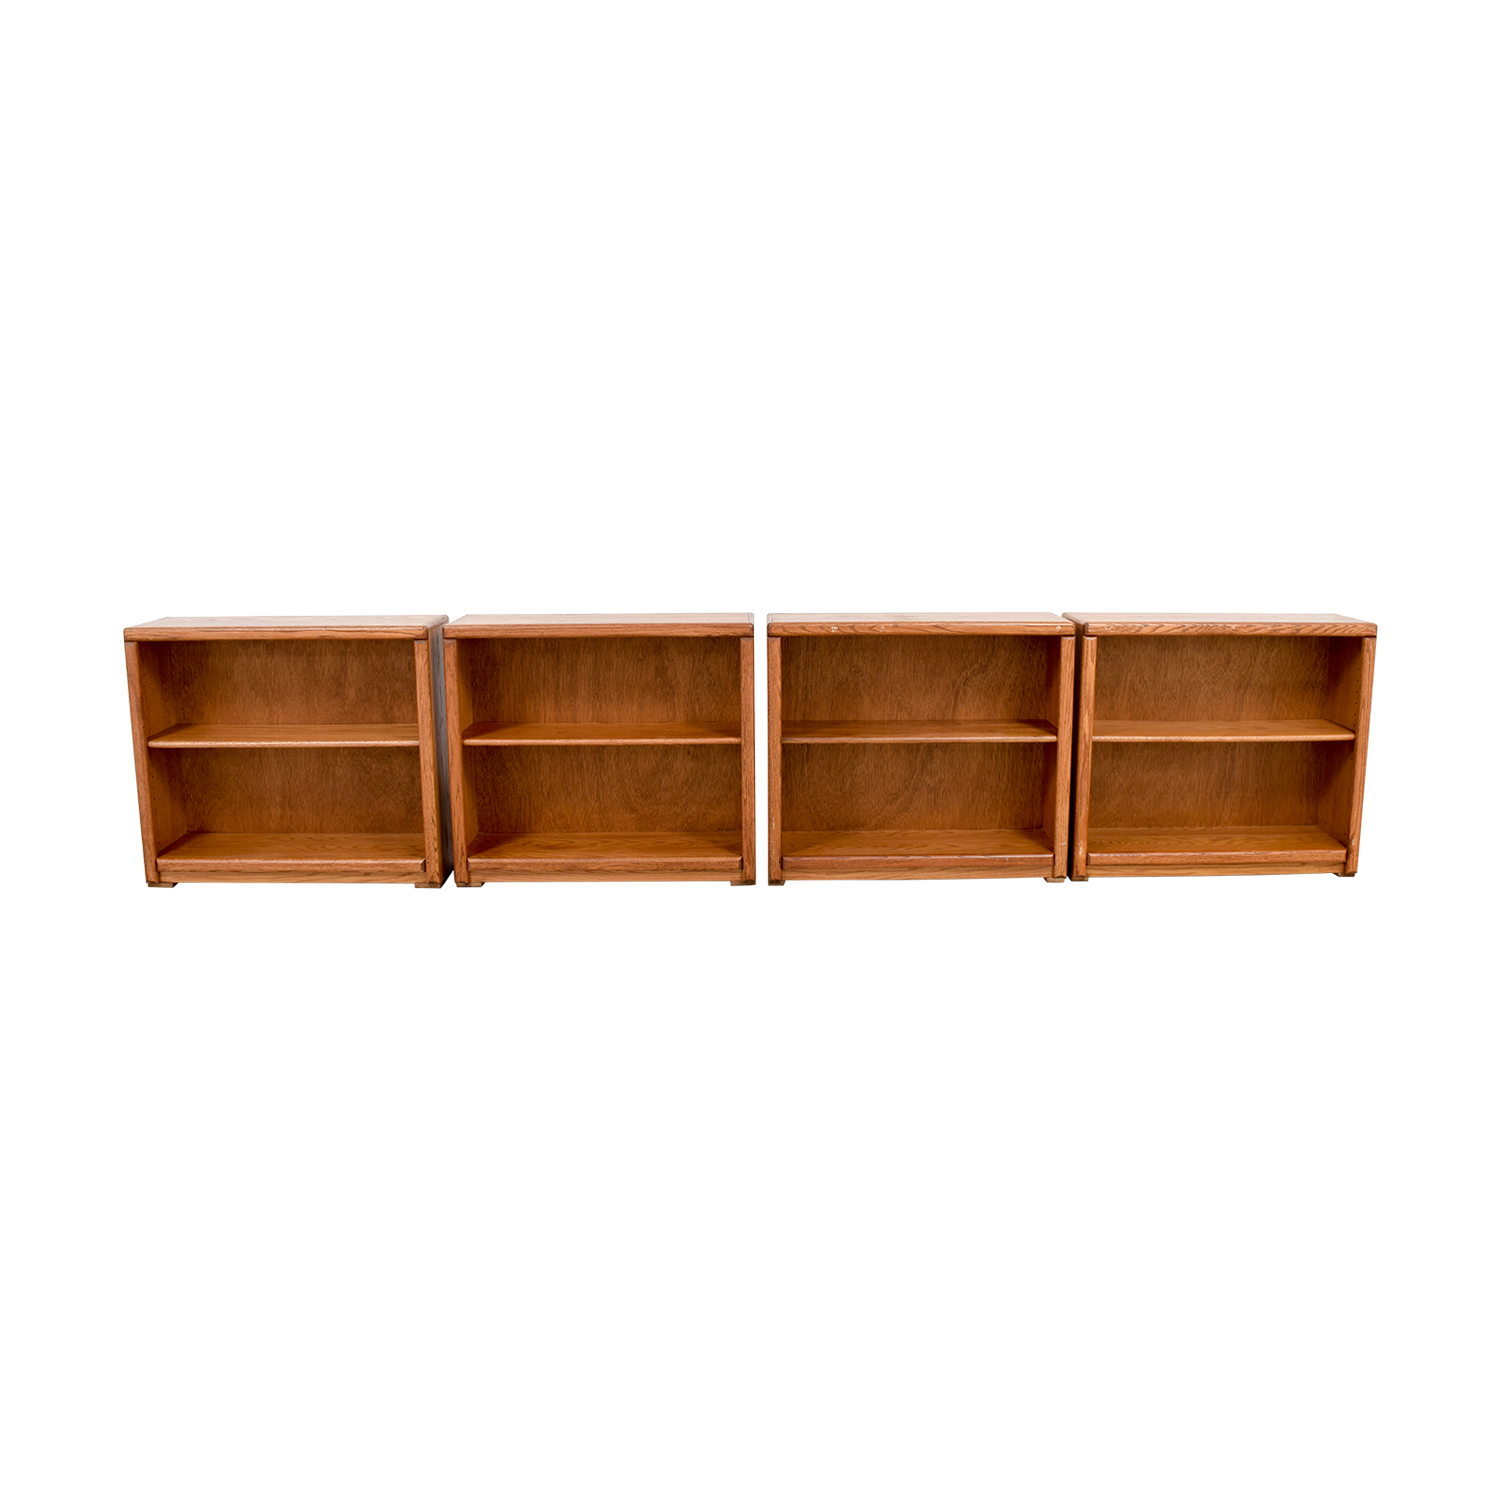 bookcase velocity white home of bookshelf size storage furniture organization beech full systems narrow carson golden two eco and shelf espresso